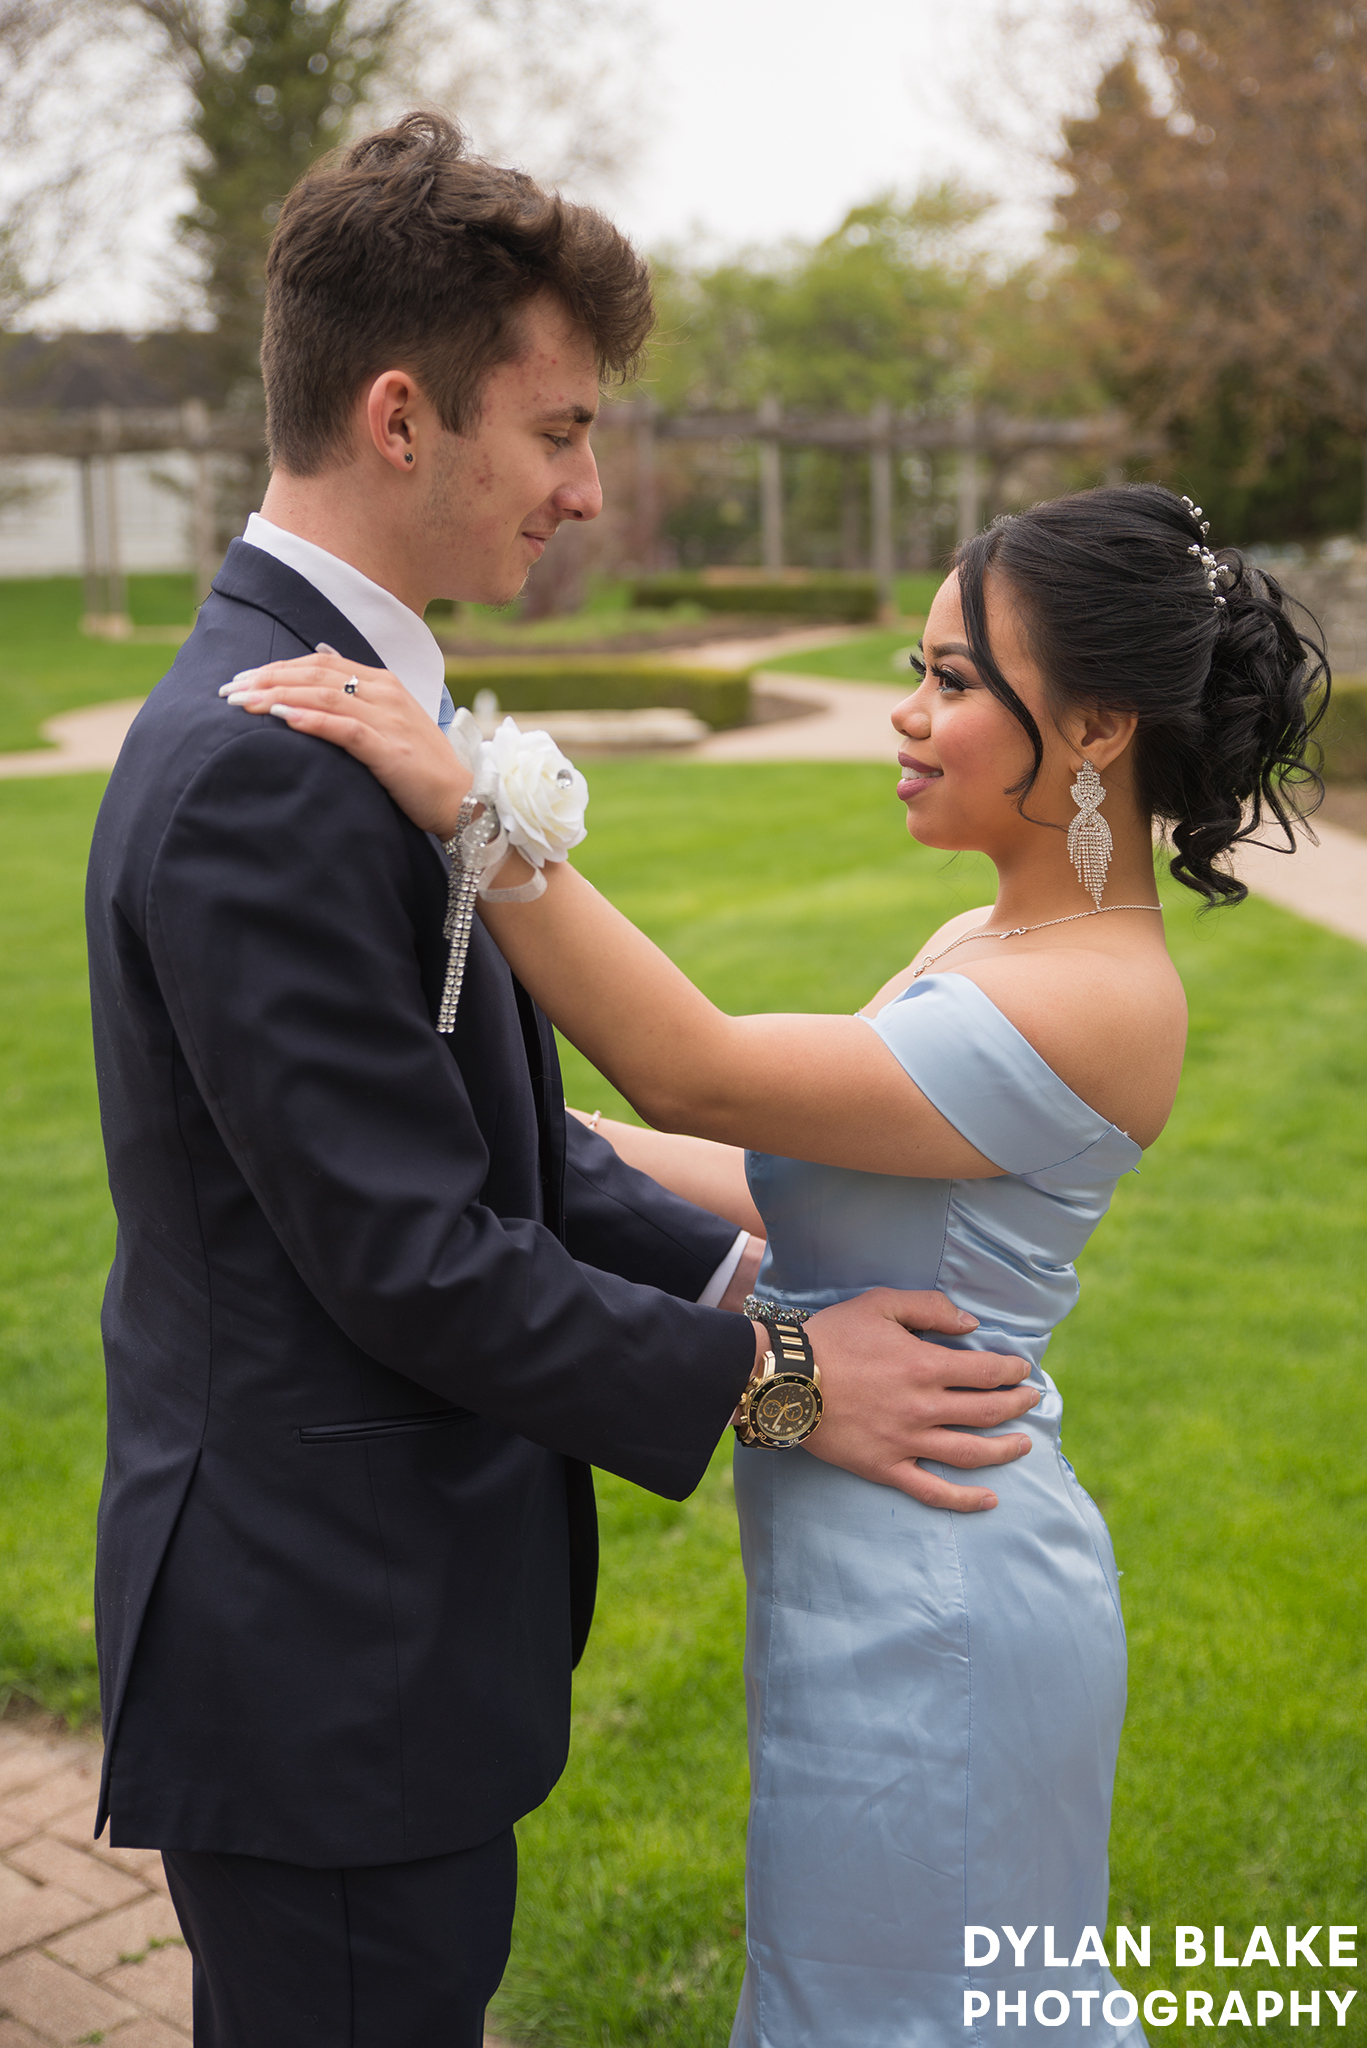 eliza-and-nico-prom-bowen03.jpg